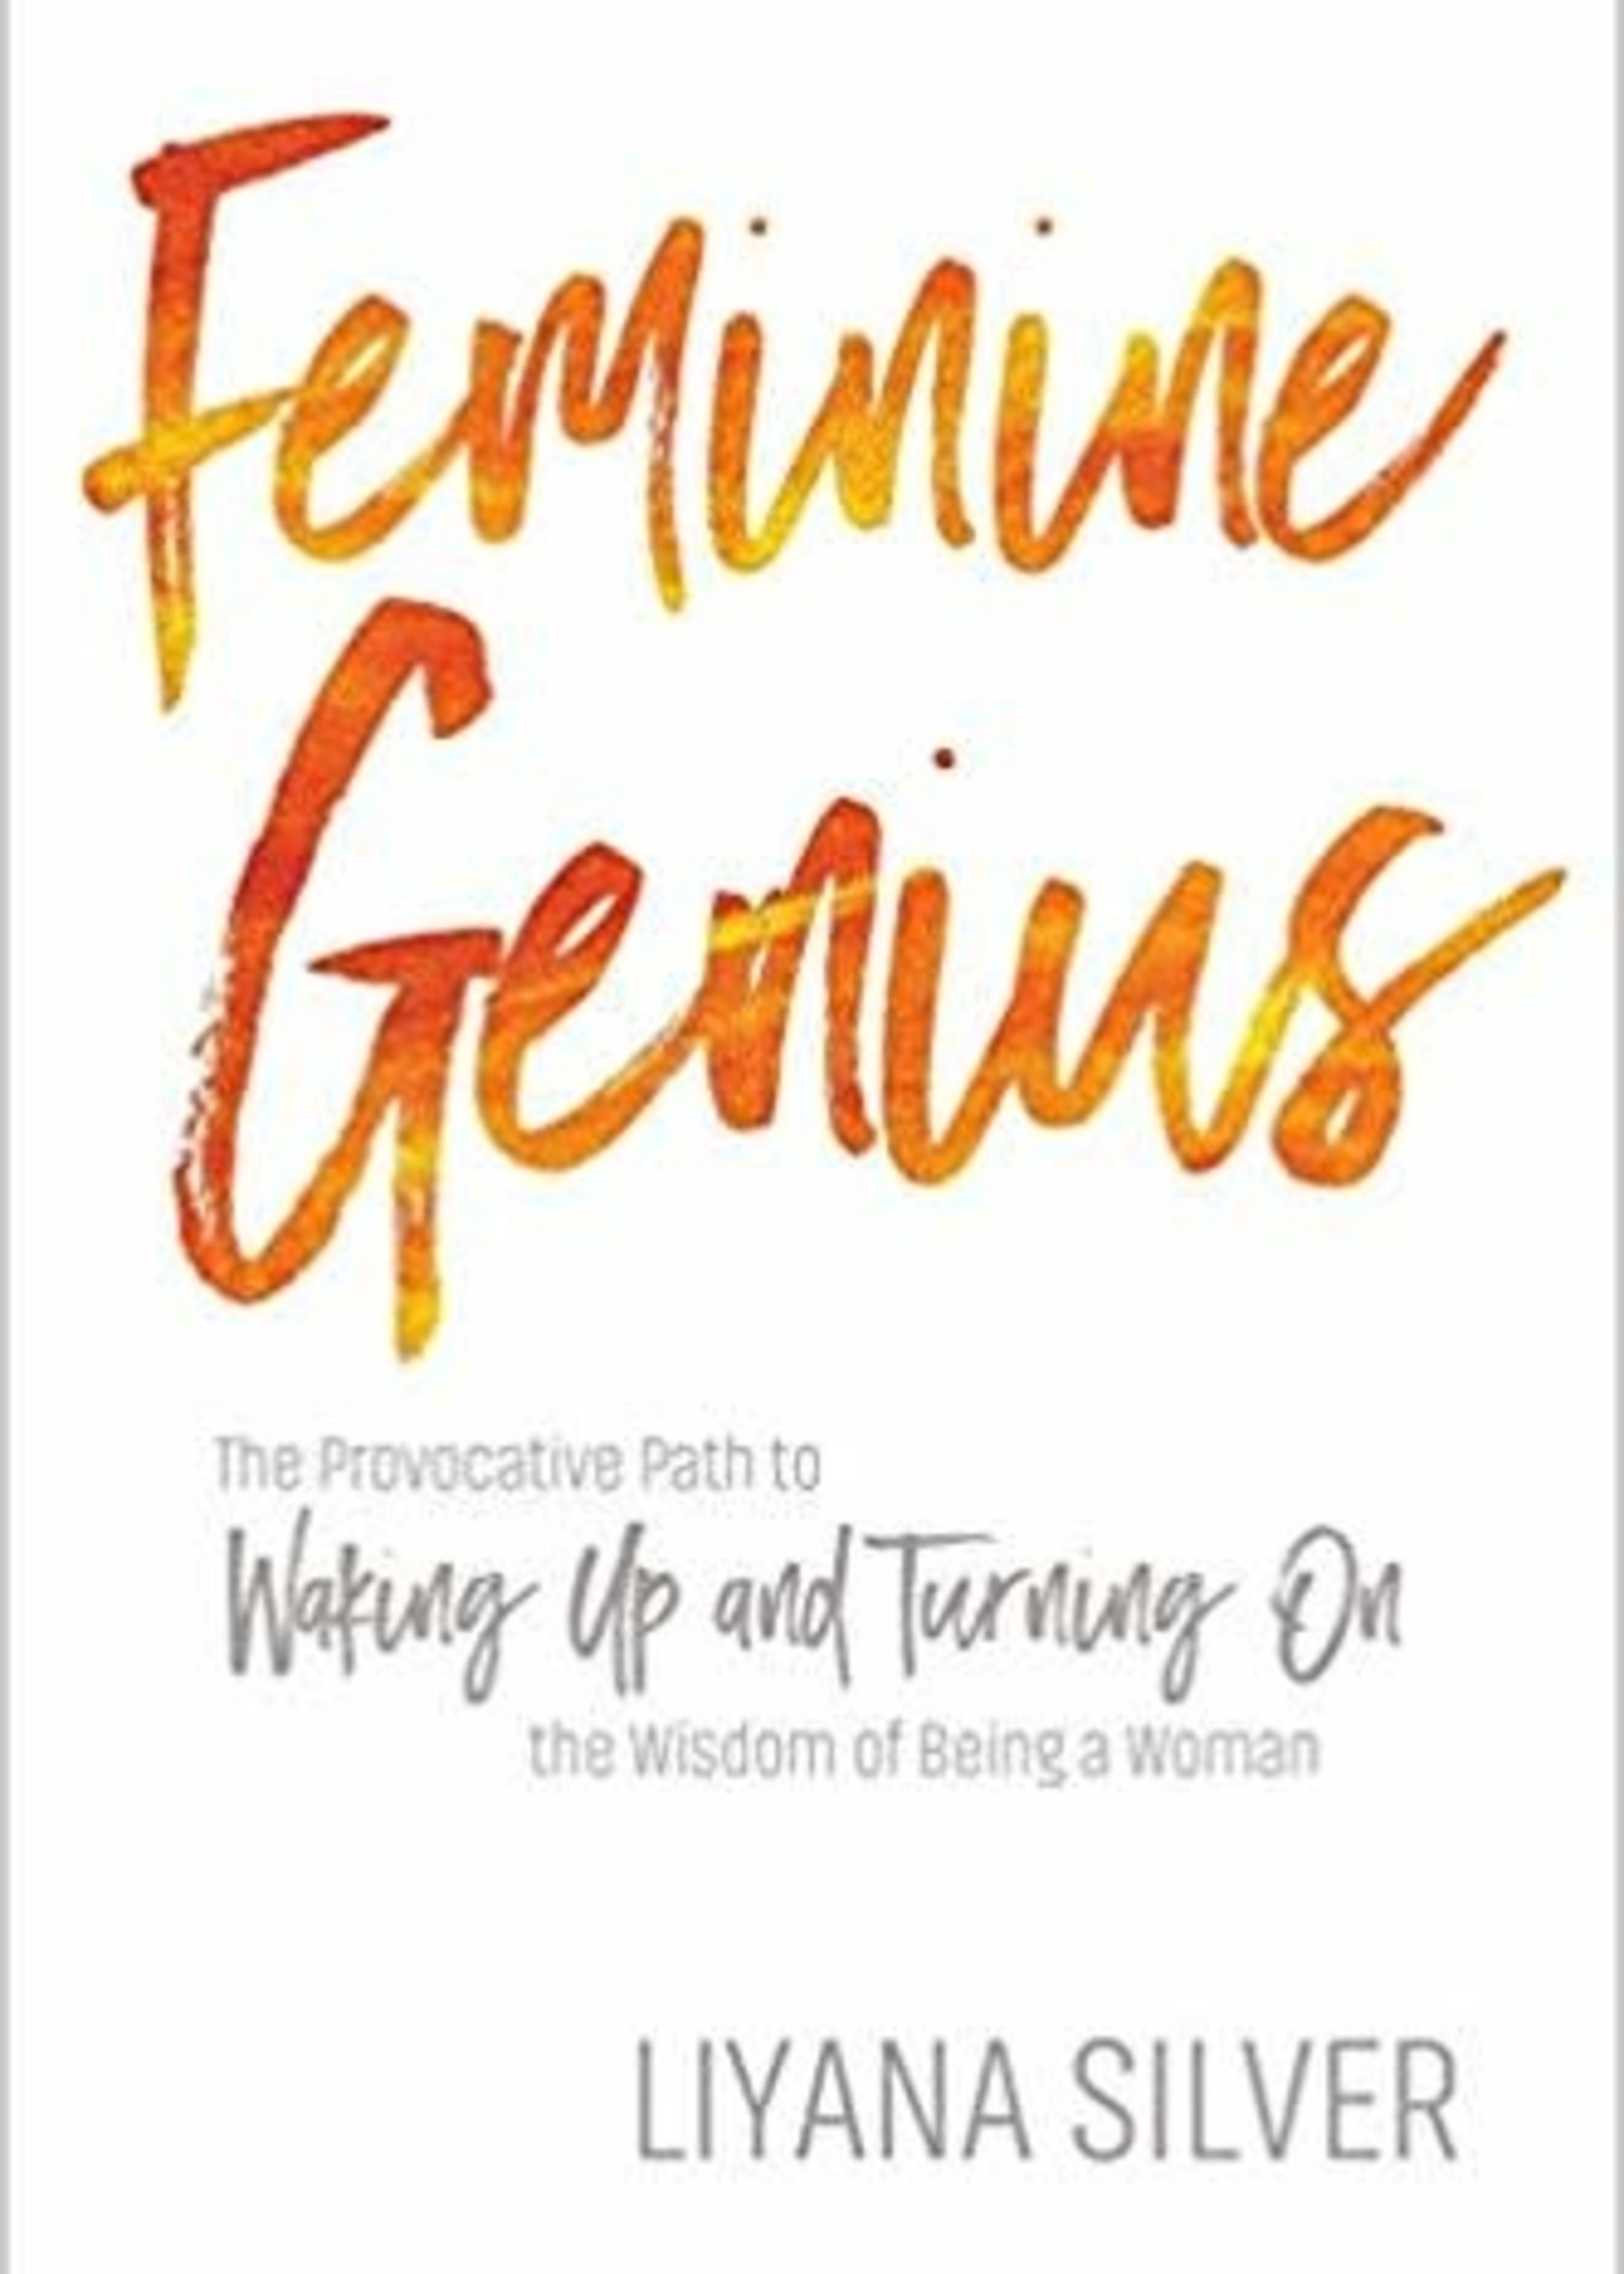 Feminine Genius: The Provocative Path to Waking Up and Turning on the Wisdom of